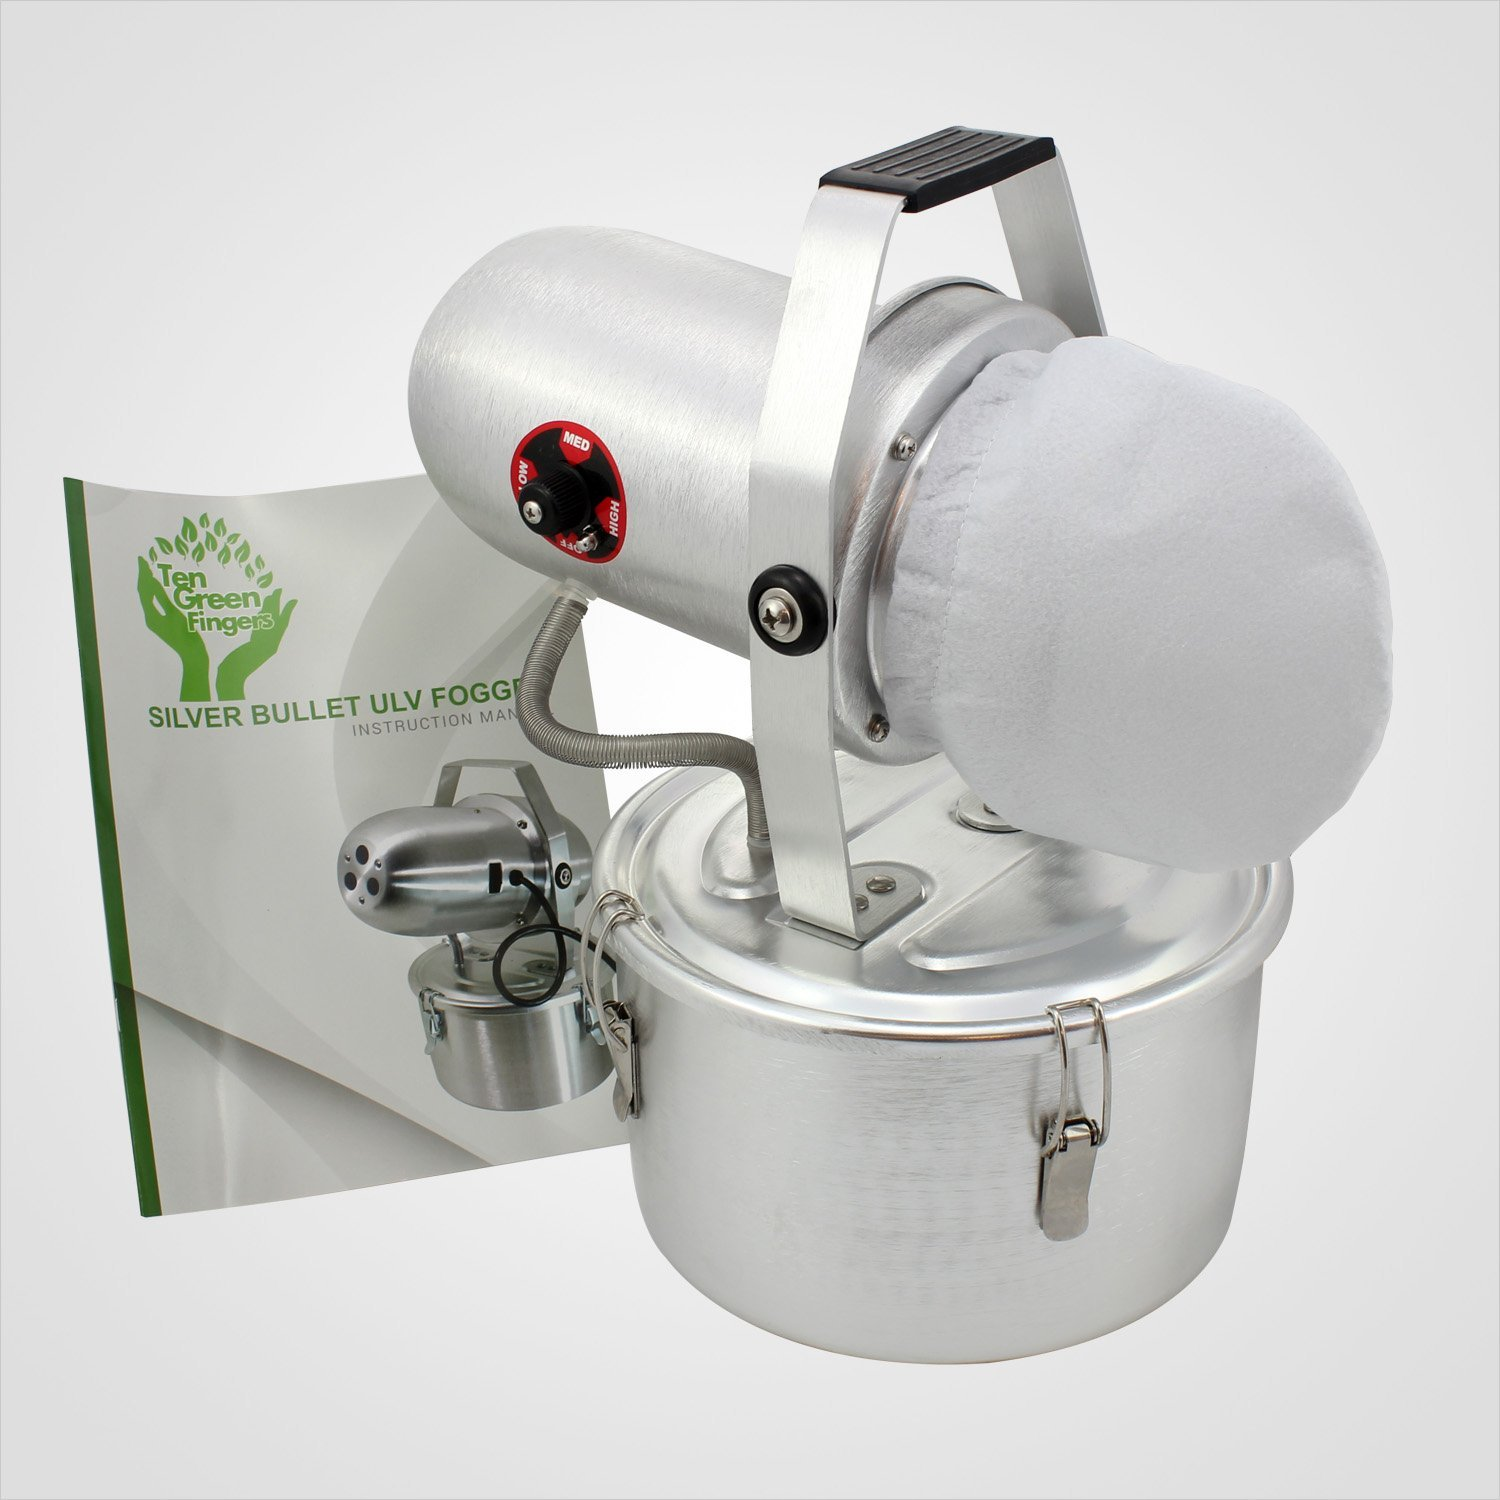 Silver Bullet ULV Non-Thermal Cold Fogger can help you with insect fumigation, pest control fogging, sanitizer and sterilization fogging, and as well as mildew and mold control